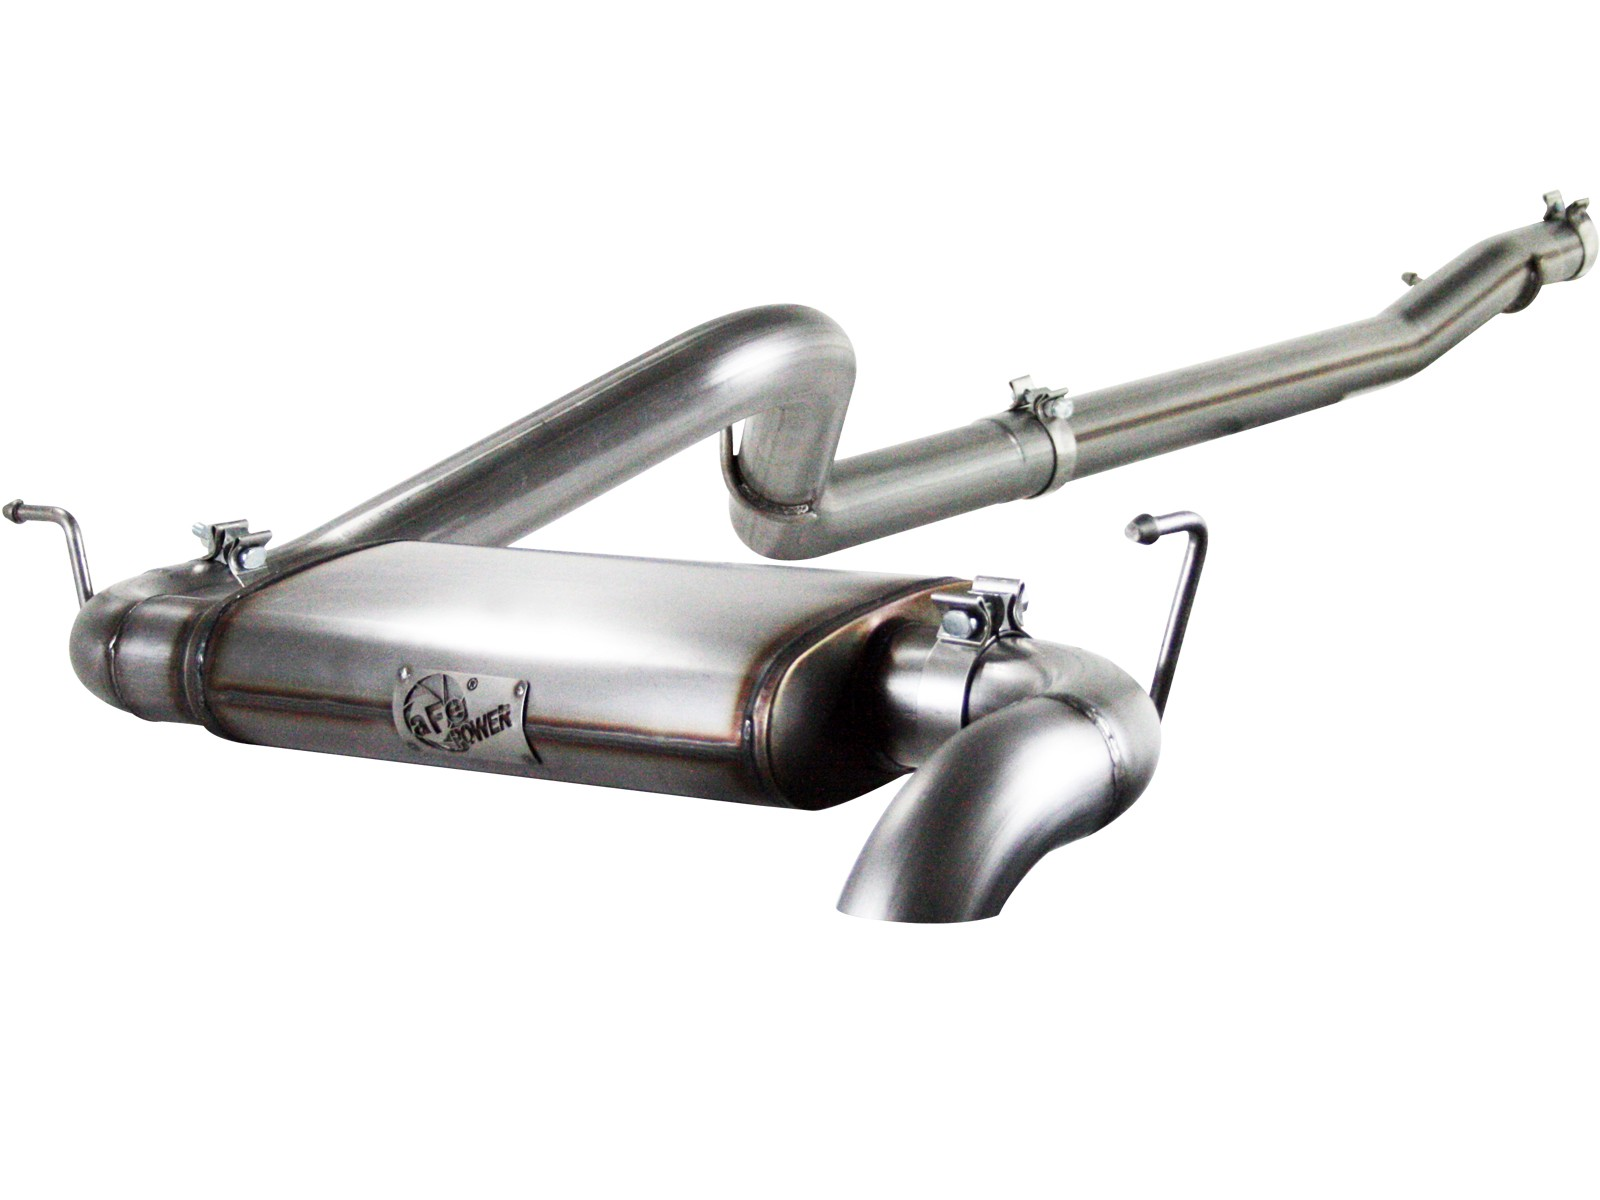 "MACH Force-Xp 3"" 409 Stainless Steel Cat-Back Exhaust System"